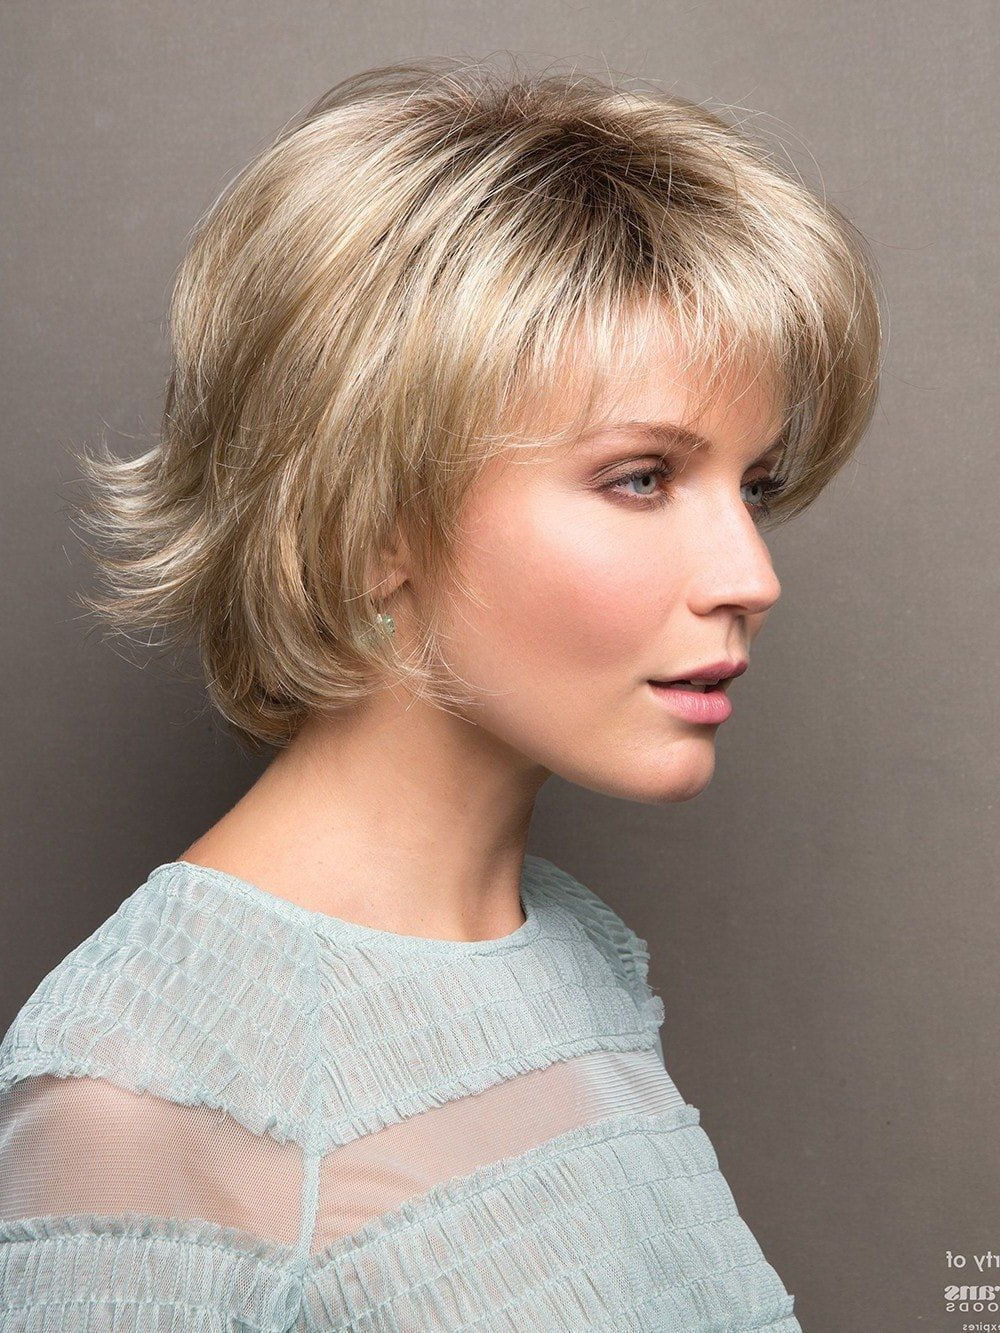 Sky | Synthetic Wig (basic Cap) | Short Straight Hair Within Short Chocolate Bob Hairstyles With Feathered Layers (View 6 of 20)